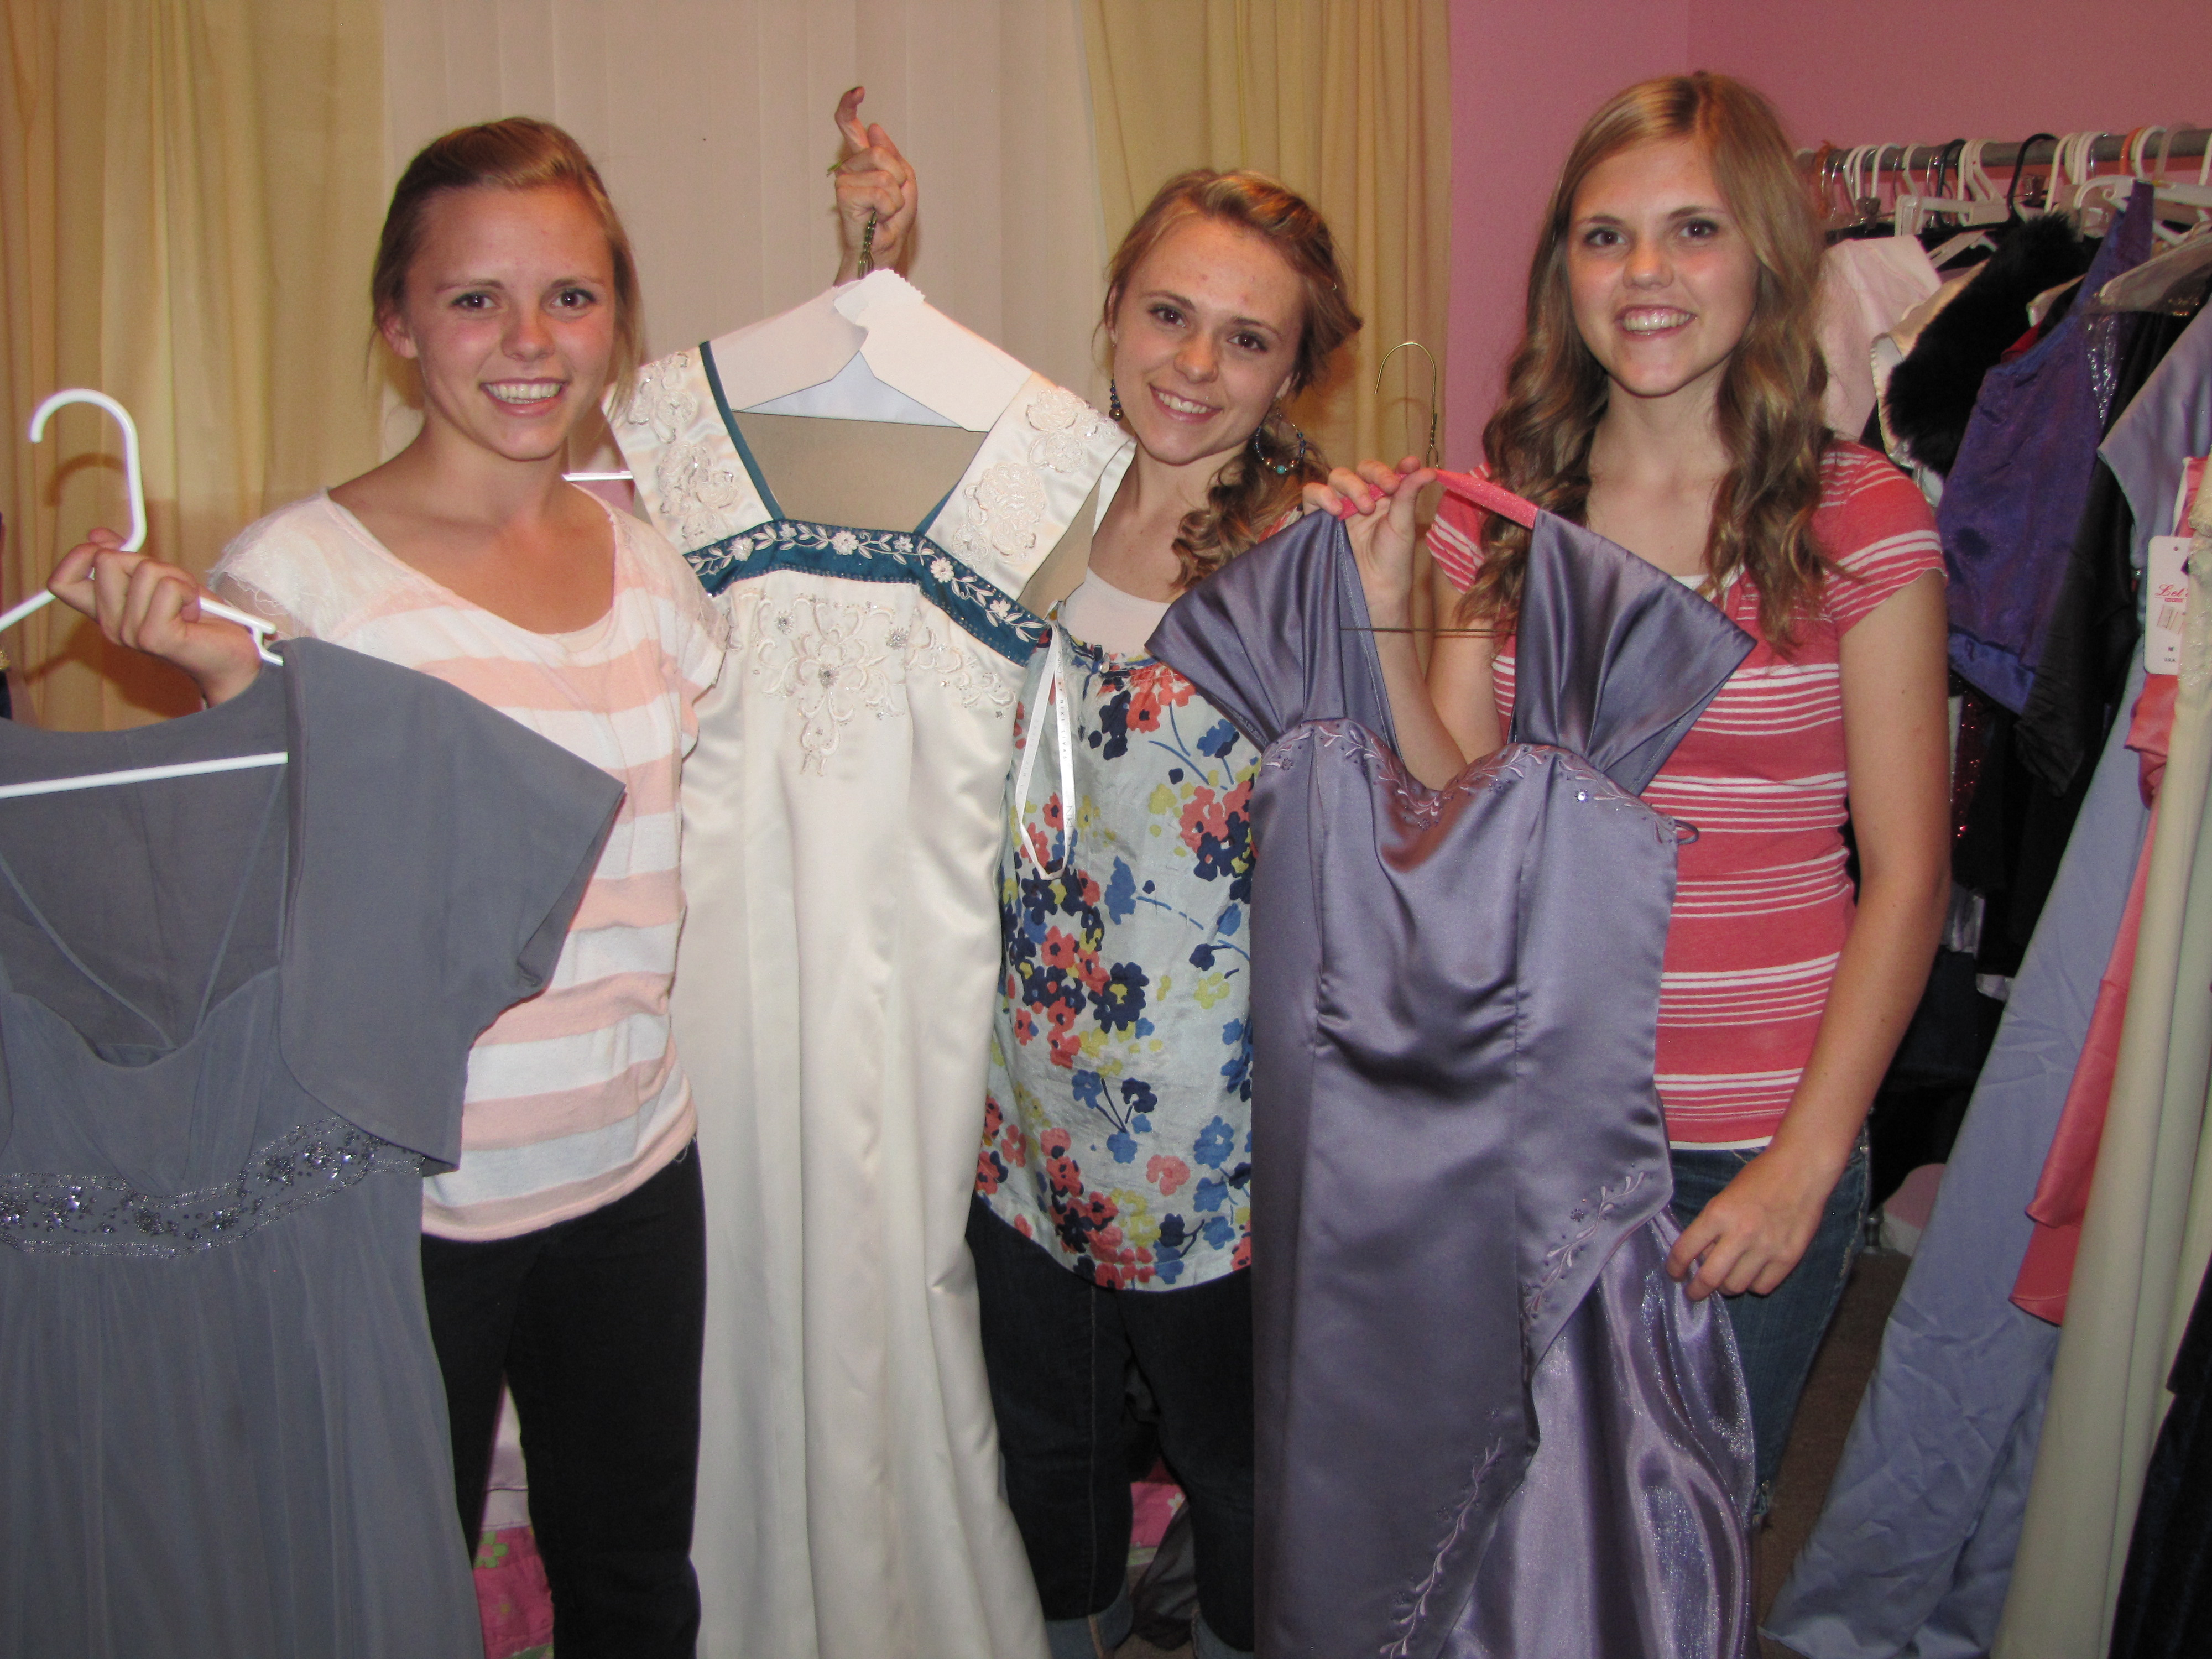 1ca988d38cb7 Mormon Modesty Makes It Challenging To Find A Prom Dress